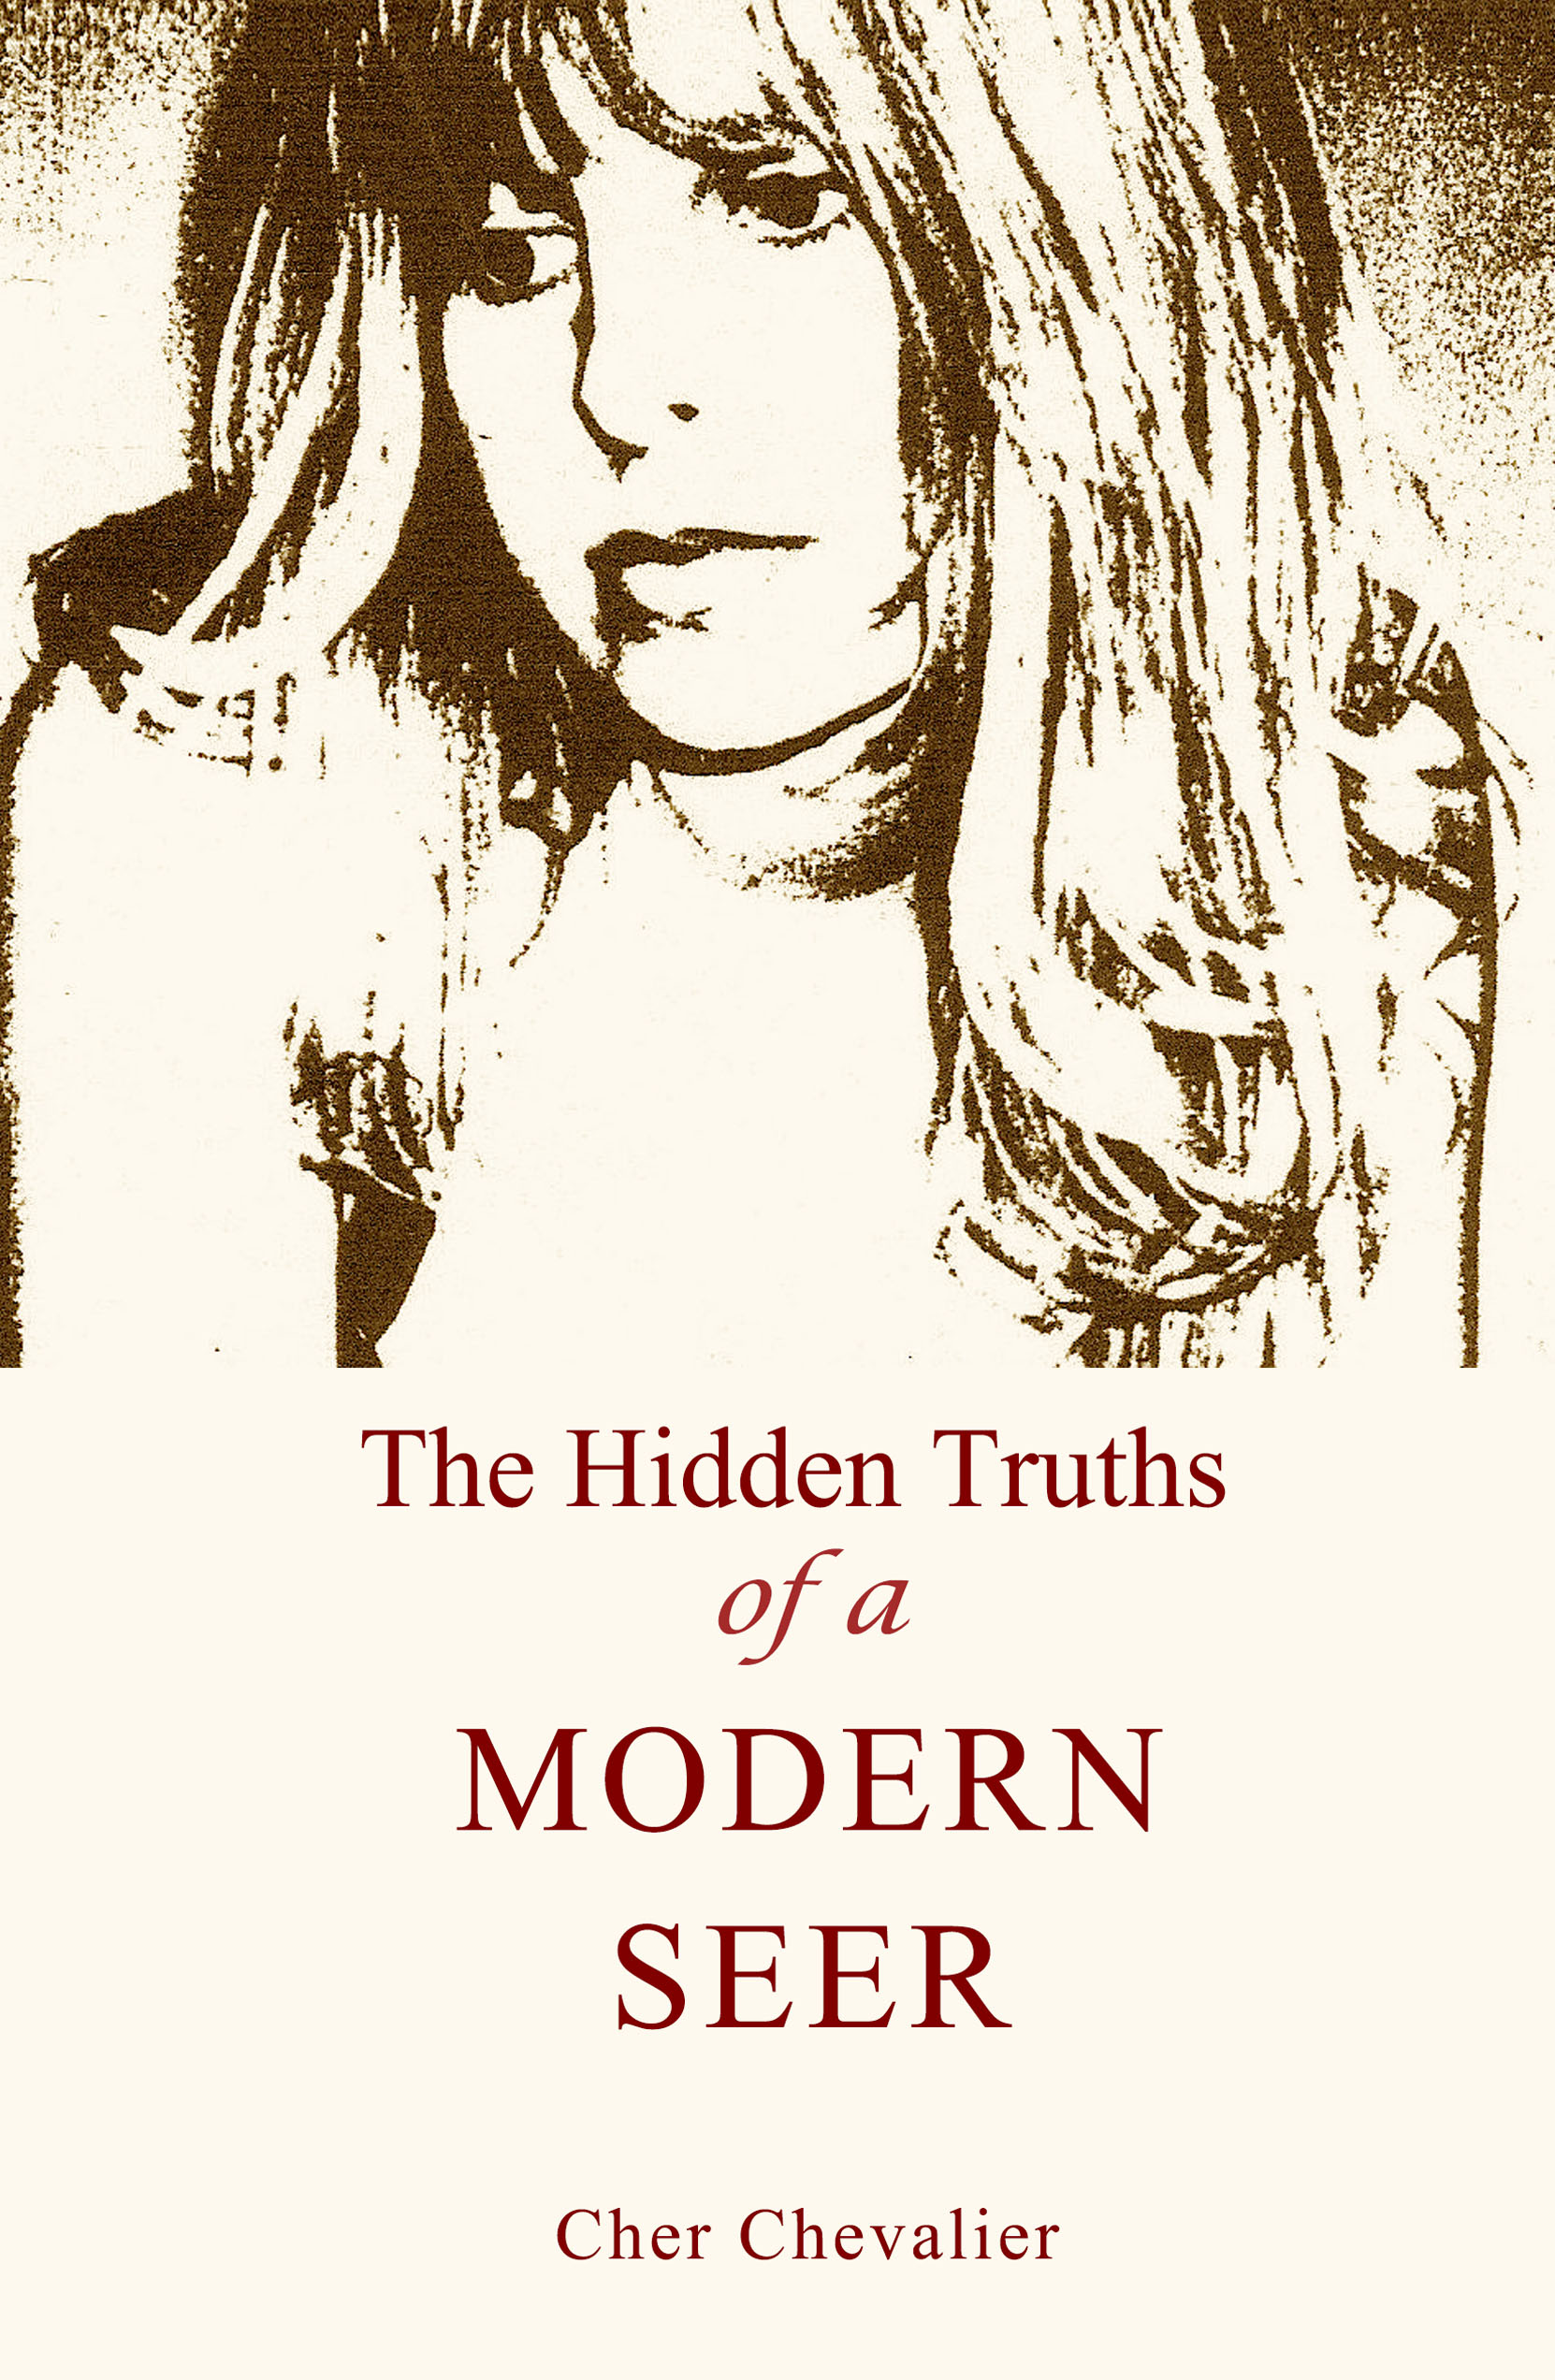 The Hidden Truths of a Modern Seer